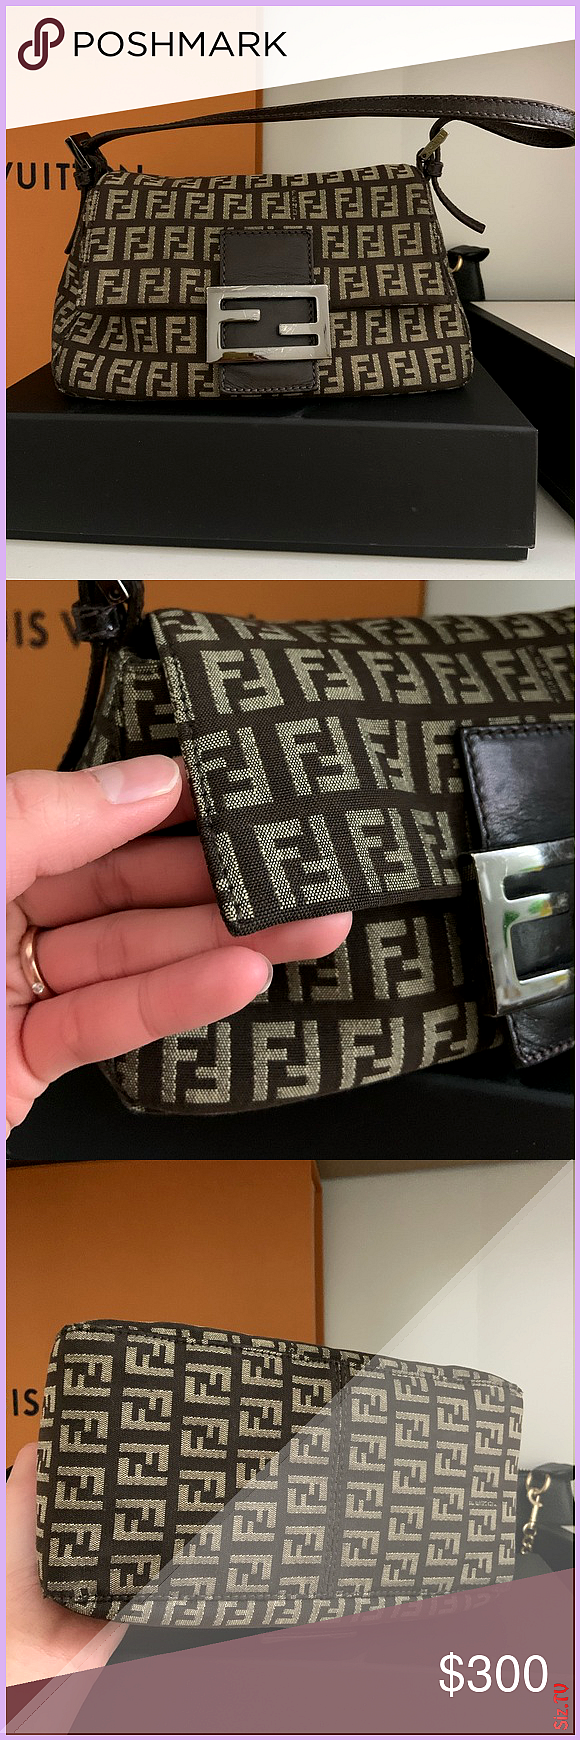 Fendi Vintage mini bag Selling my Authentic Fendi mini Zucchino Mama Forever bag in good condition or 100 money back There is some scratches on the  Fendi Vintage mini bag Selling my Authentic Fendi mini Zucchino Mama Forever bag in good condition or 100 money back nbsp  hellip   #Authentic #Bag #condition #FENDI #fendi handbag mini #good #Mama #Mini #money #scratches